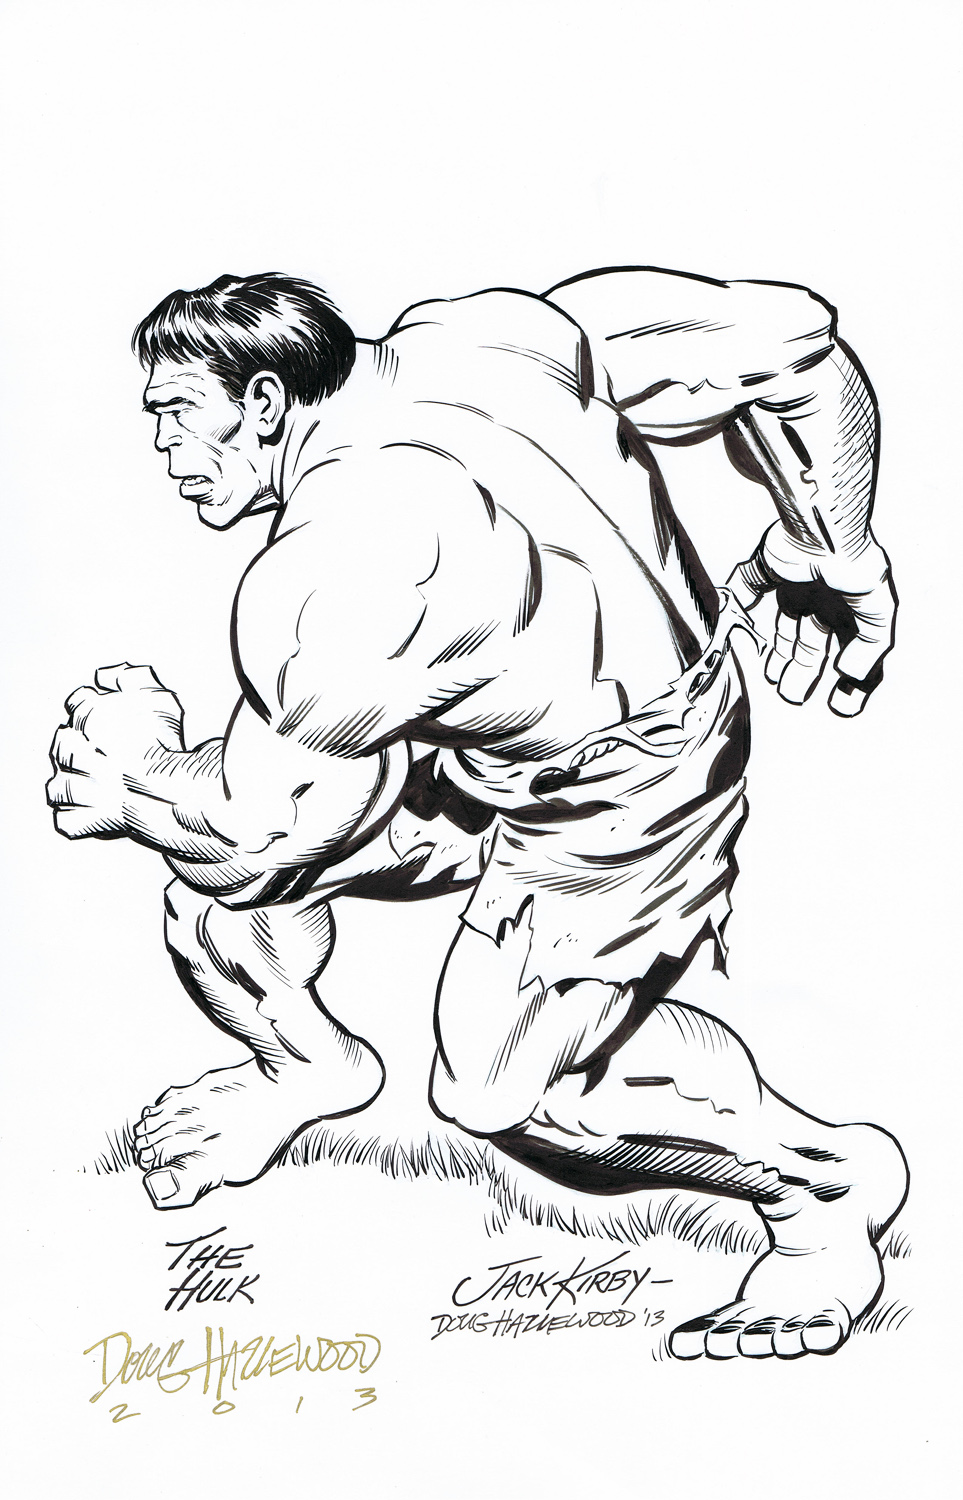 INCREDIBLE HULK Pin-Up JACK KIRBY/HAZLEWOOD by DRHazlewood